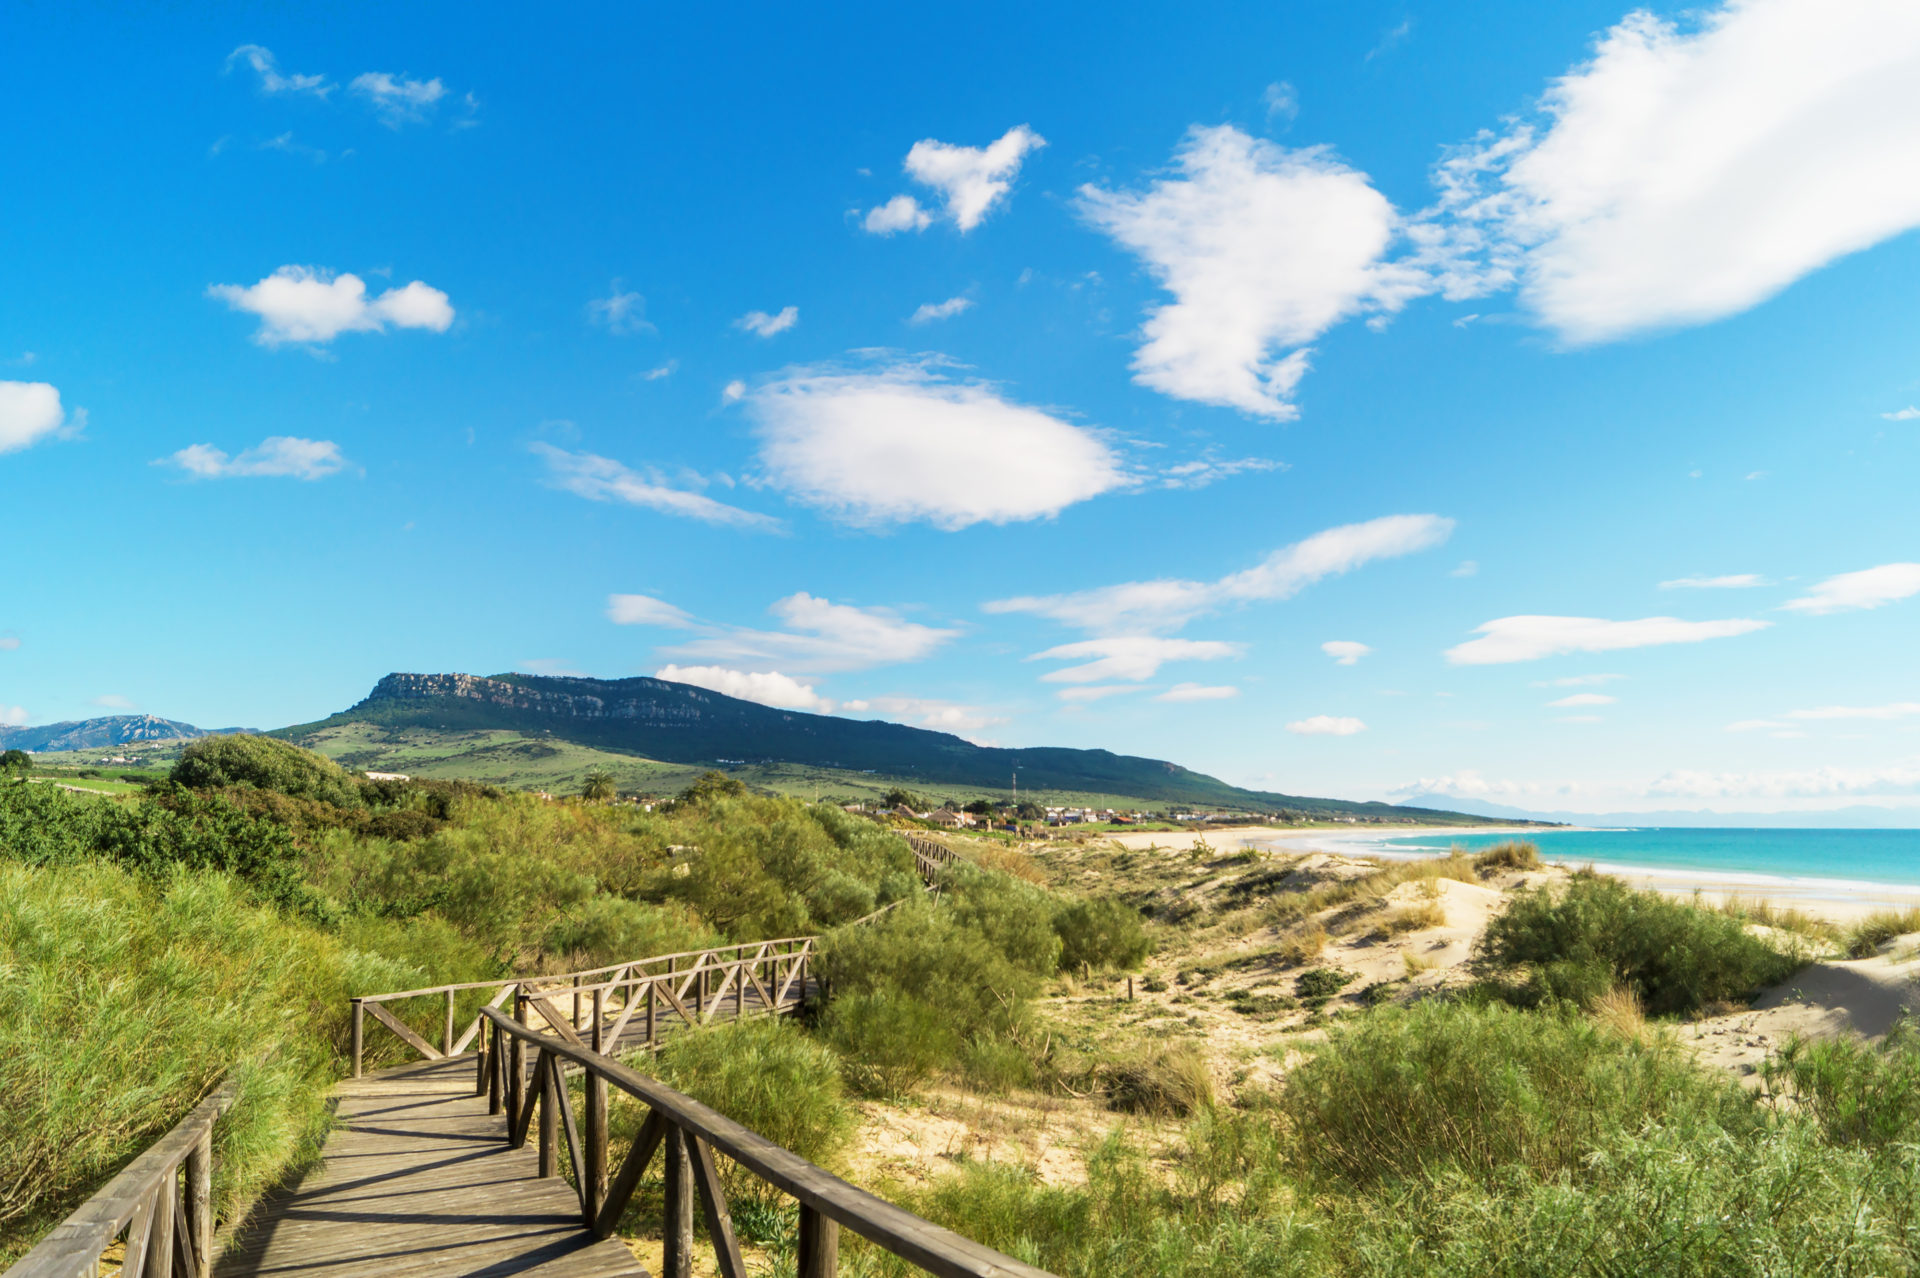 Wooden walkway in Bolonia beach, Tarifa, Andalusia, Spain